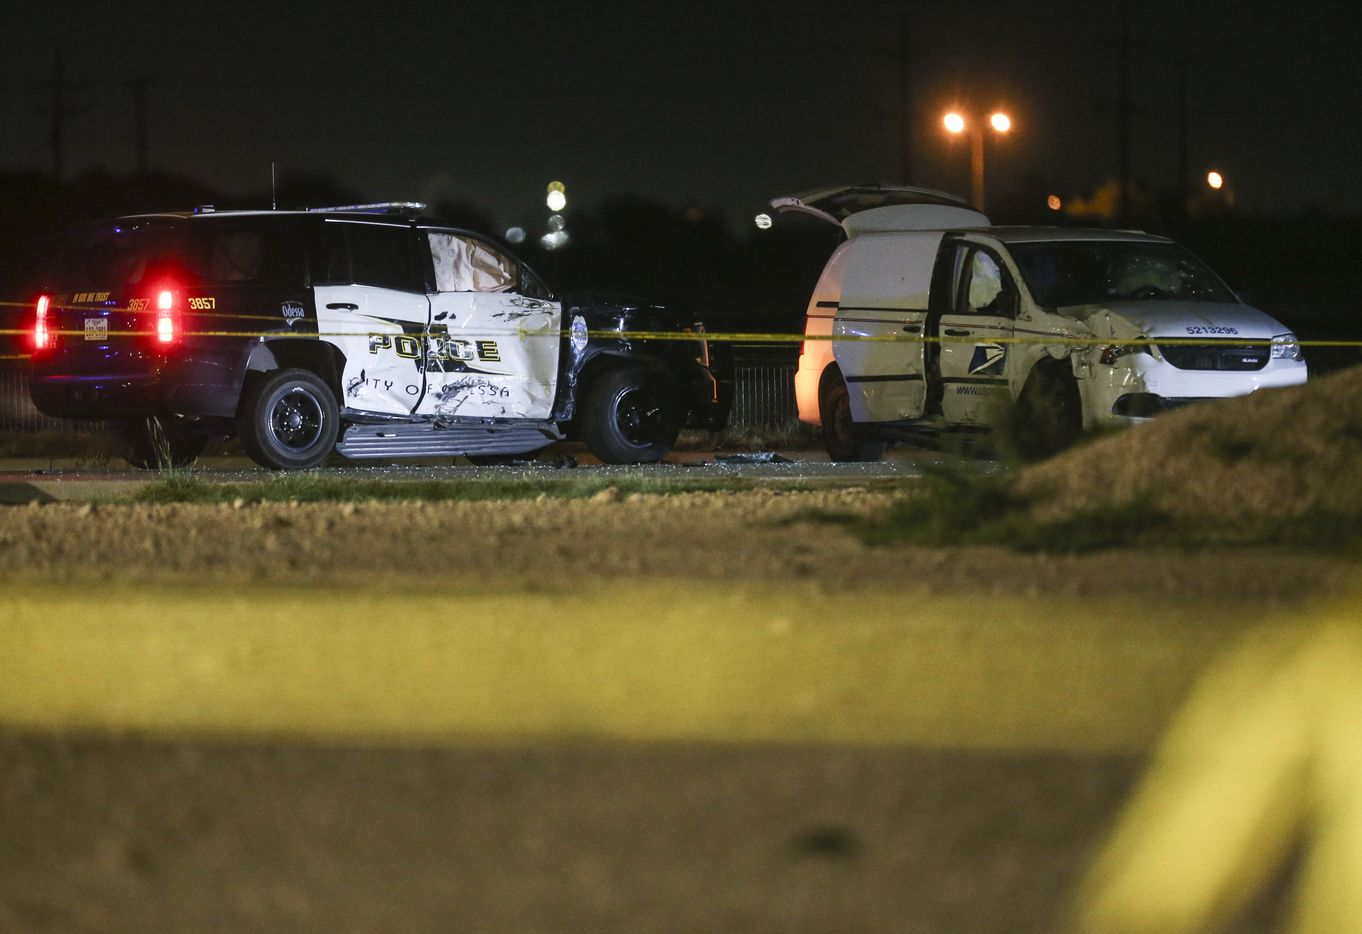 A crashed U.S. Postal Service vehicle and Odessa Police vehicle are seen late Saturday, Aug. 31, 2019 at a Cinergy movie theatre in Odessa, Texas.